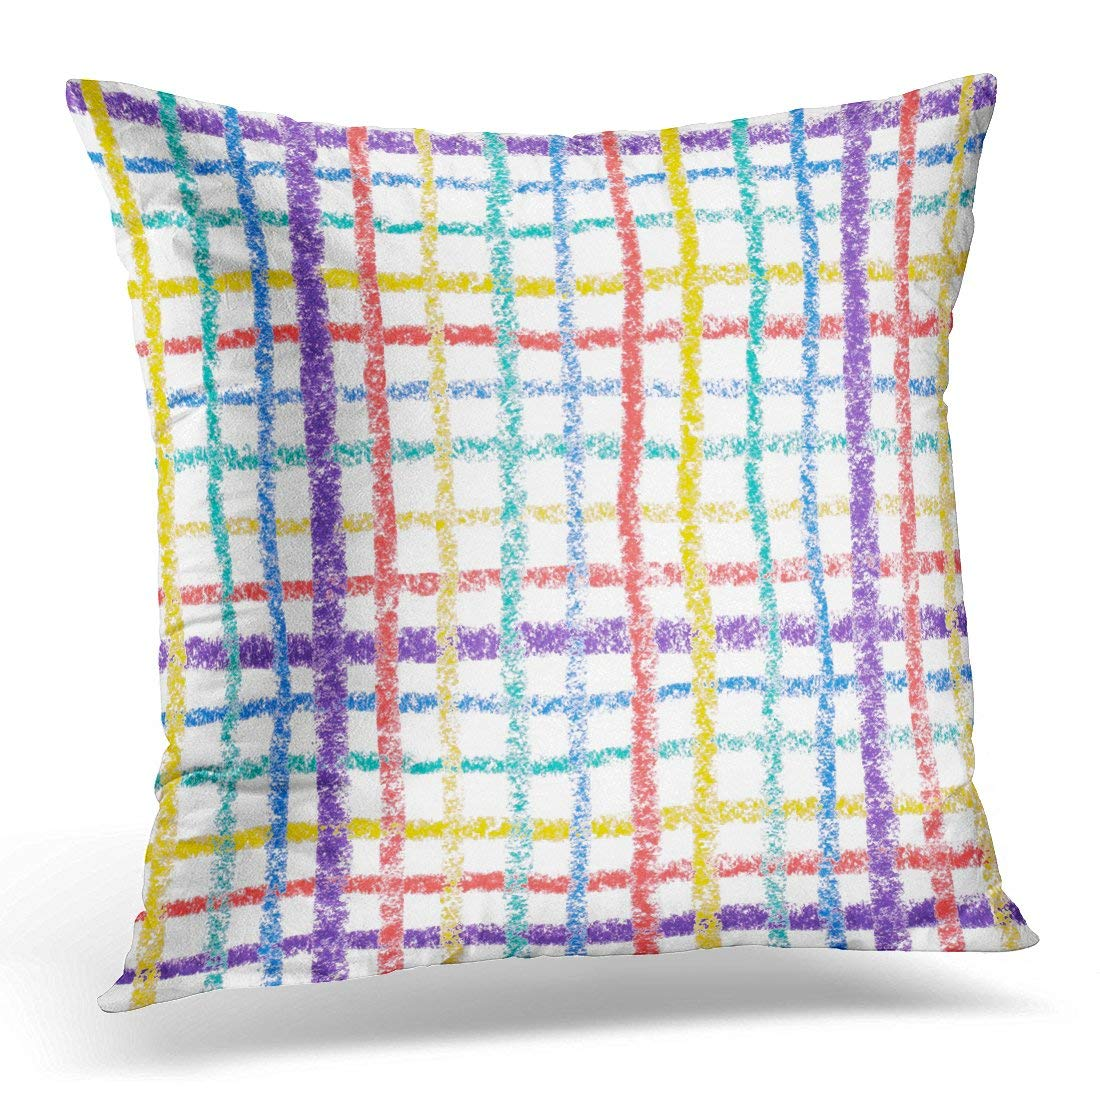 CMFUN Blue Child Hand Drawing Colorful Crayon Lines White Red Color Pillow Case Pillow Cover 20x20 inch